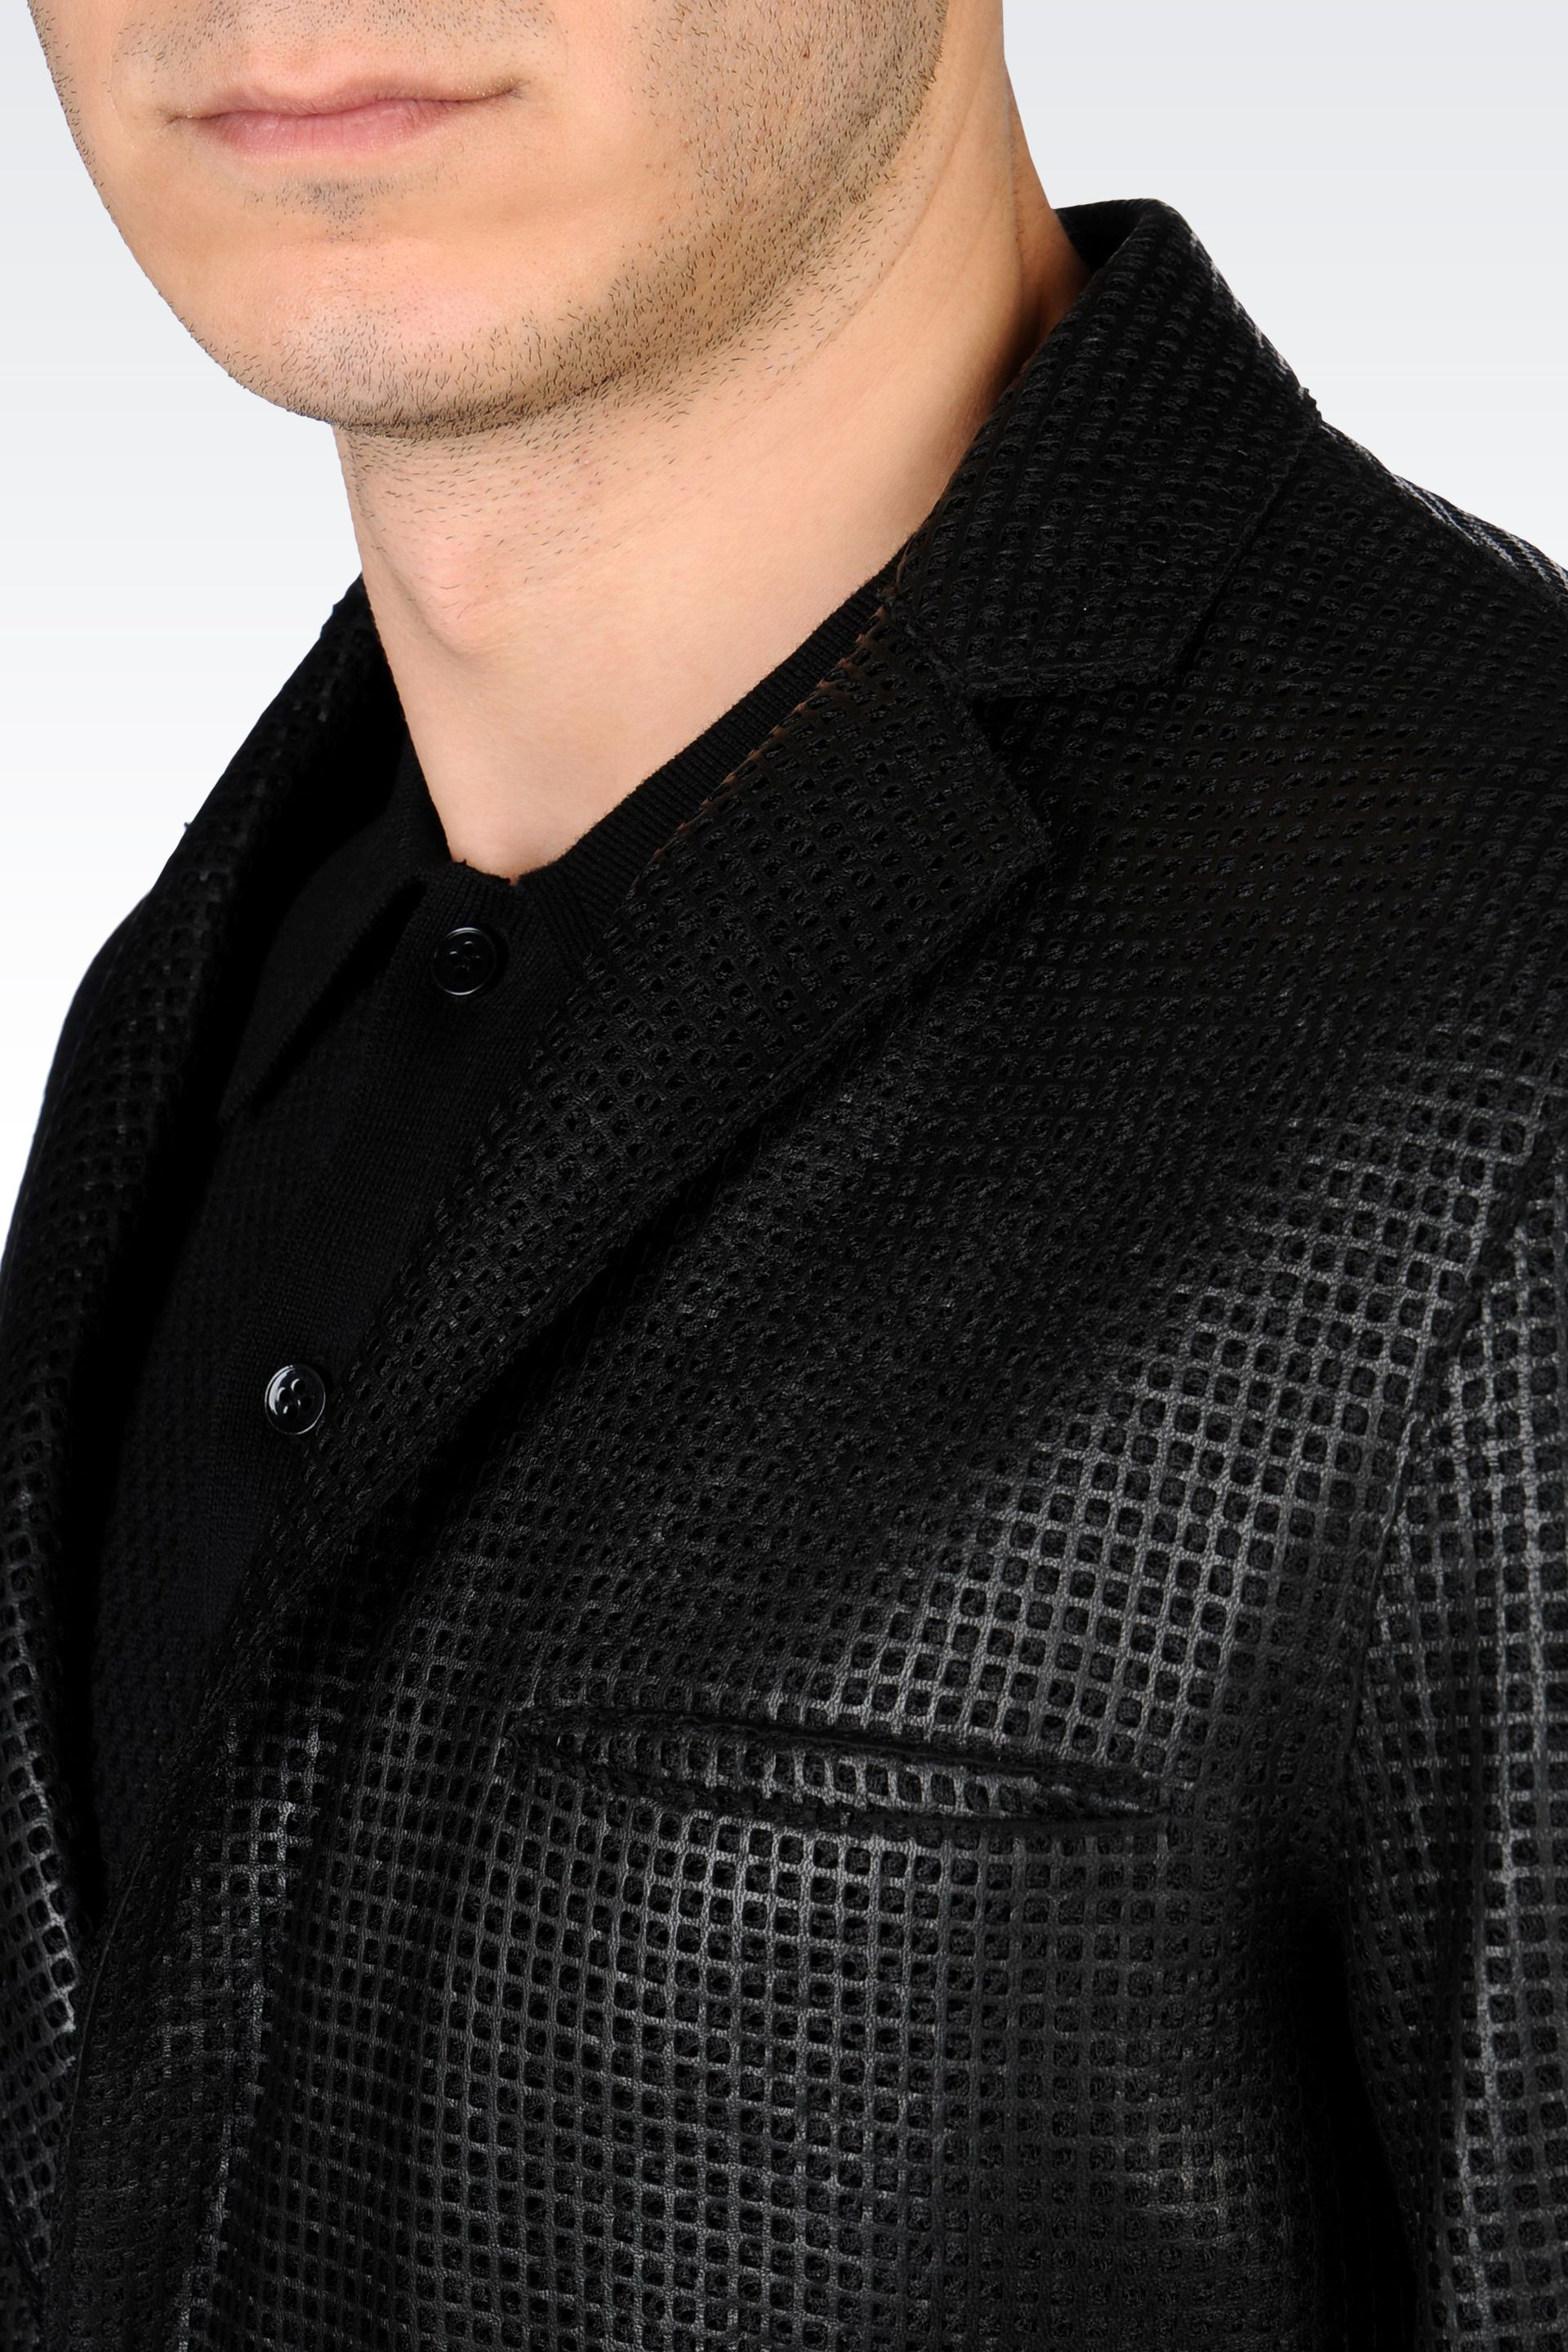 d1963fe49 Emporio Armani Black Singlebreasted Jacket in Perforated Nappa Leather for  men